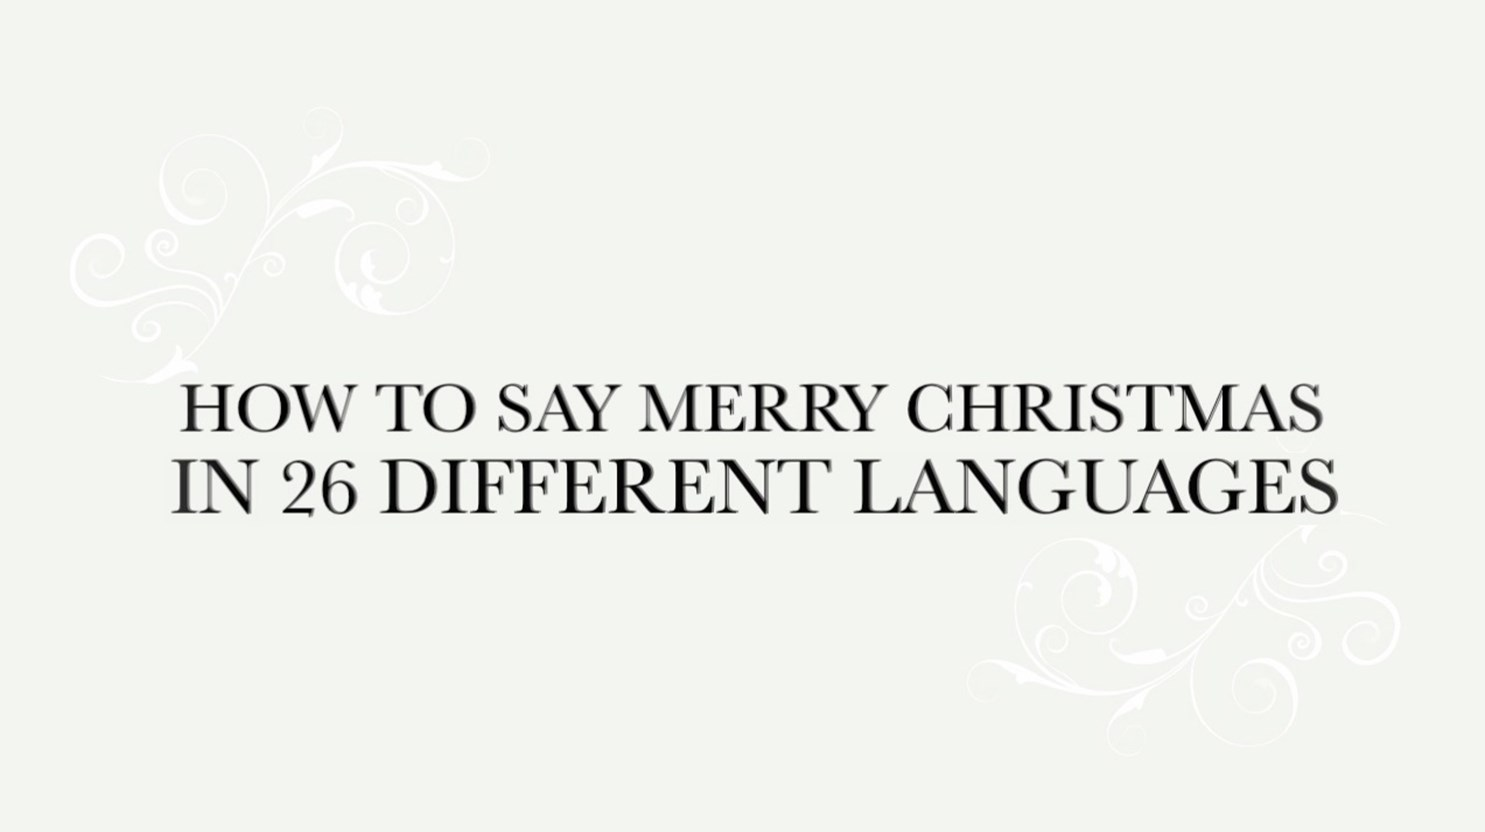 Merry Christmas - Welcome to Ampersand\'s travel blog